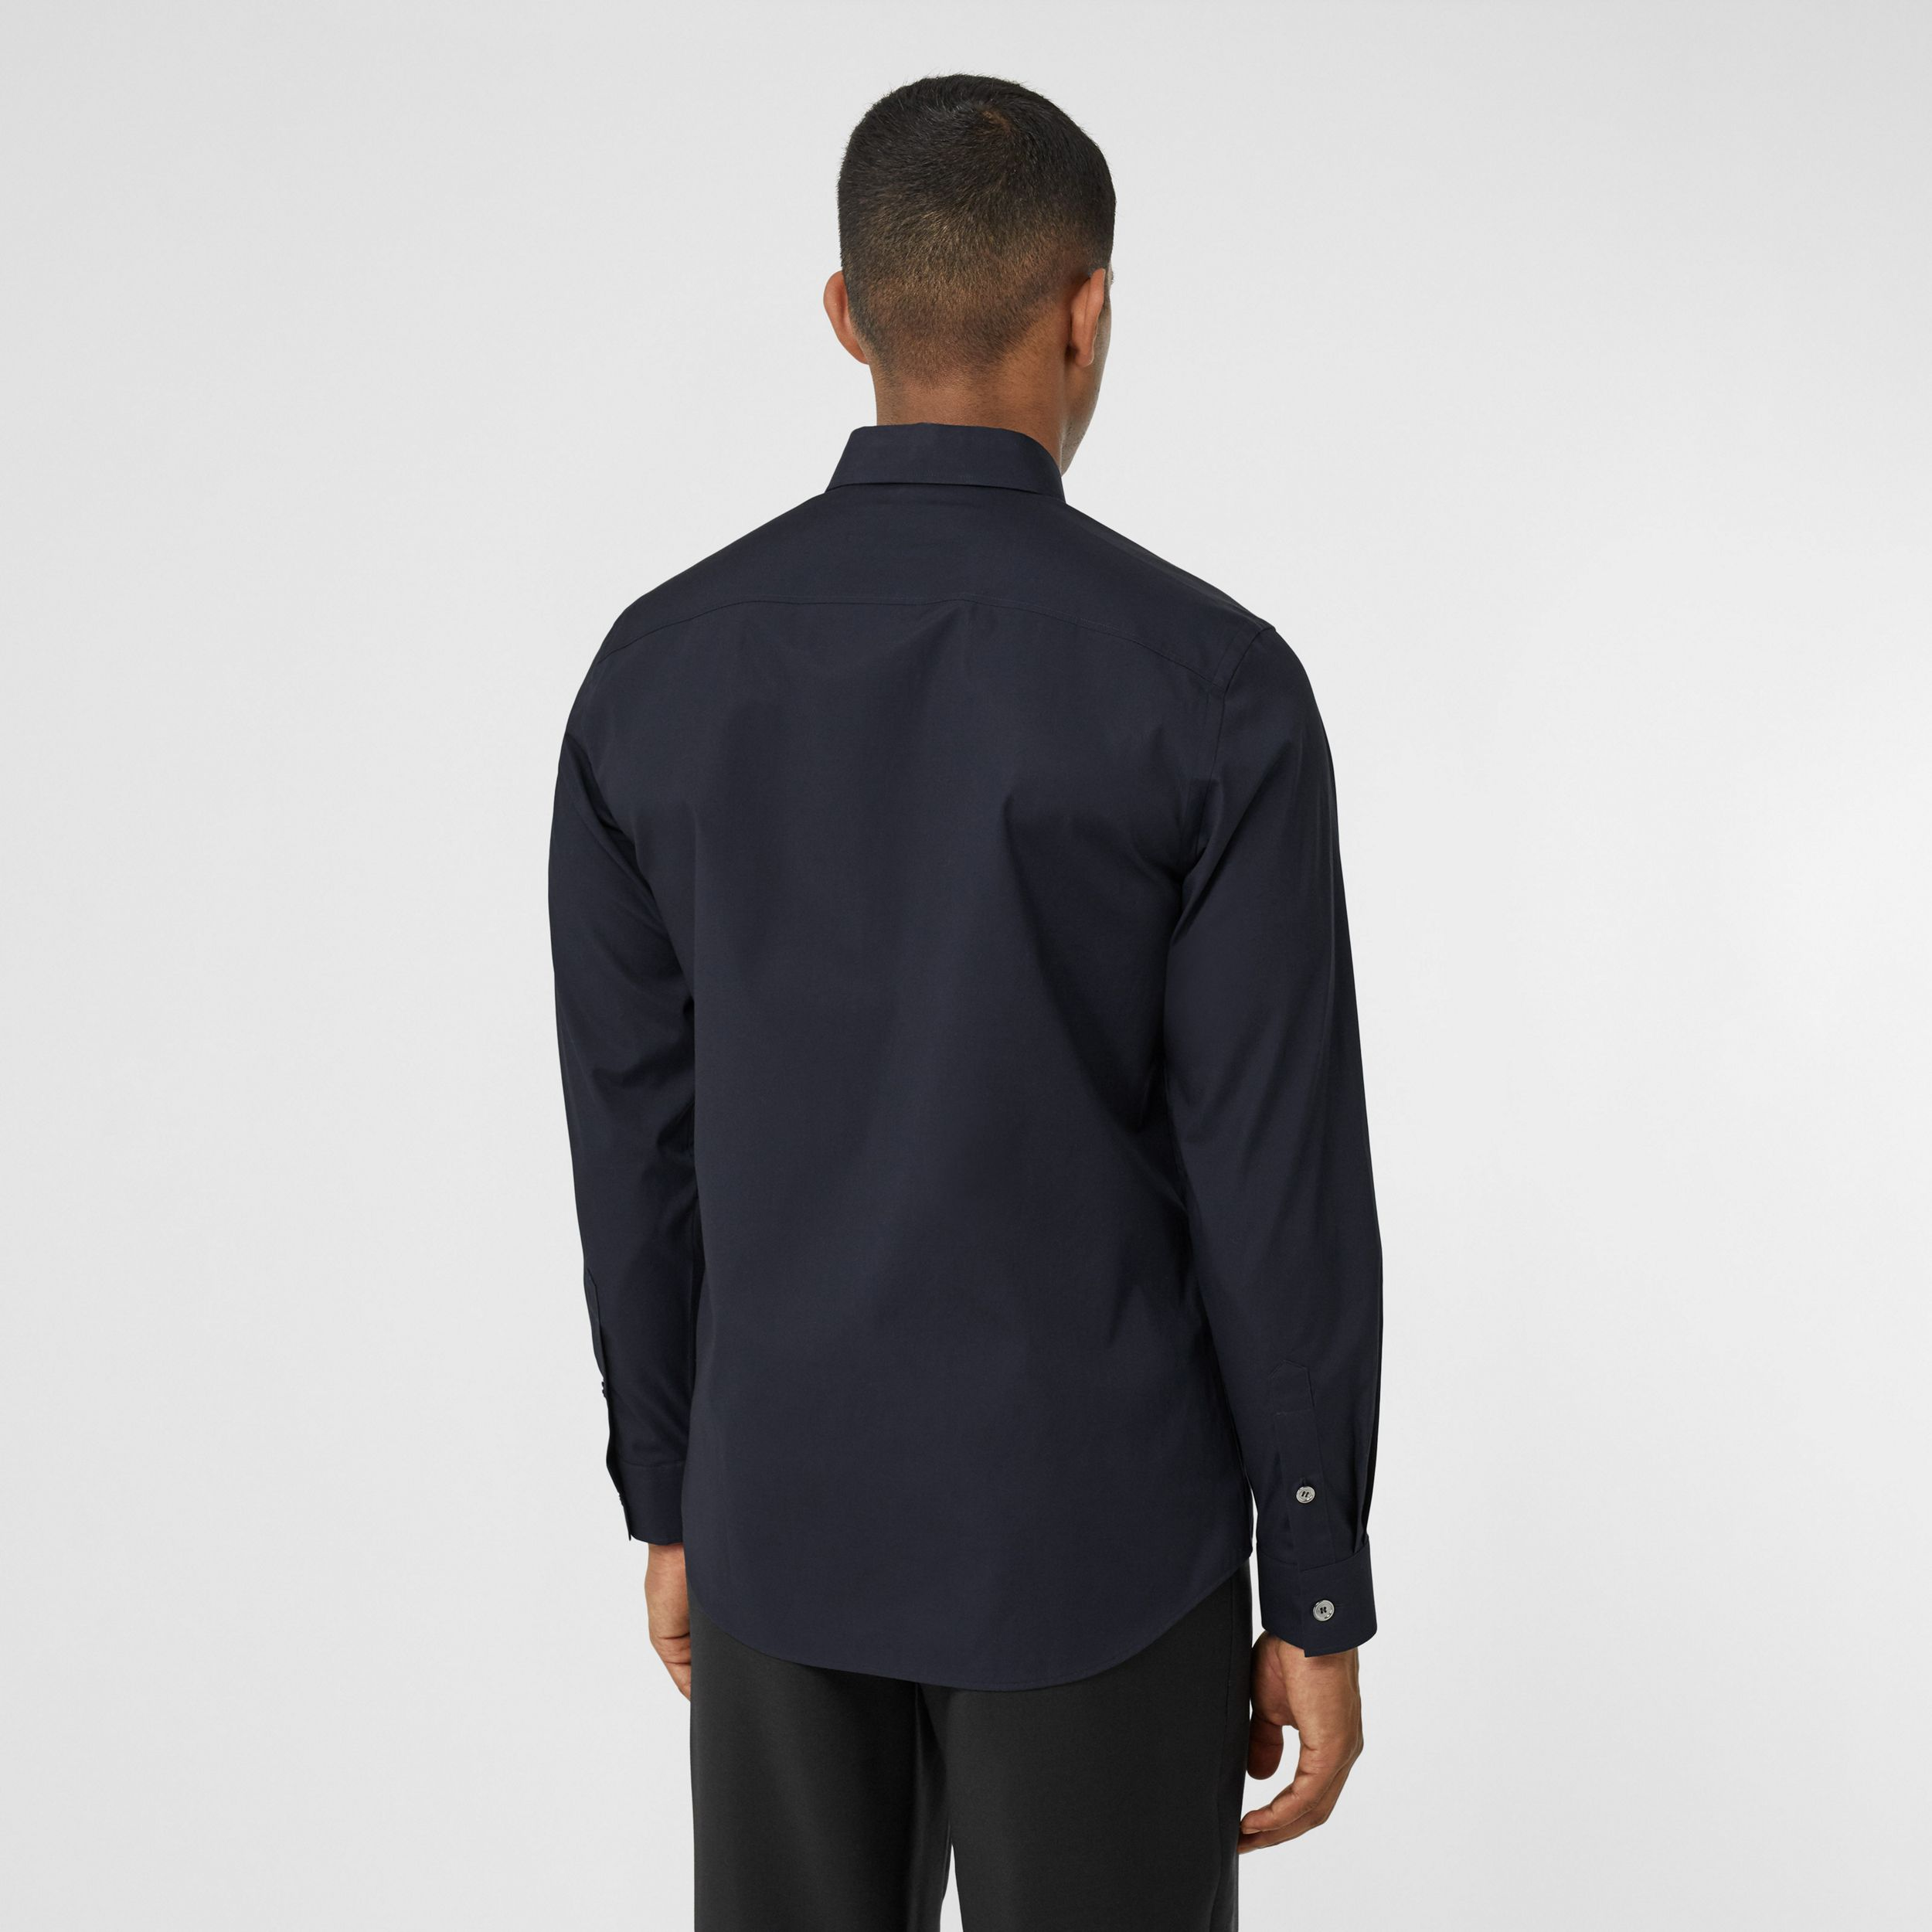 Monogram Motif Stretch Cotton Poplin Shirt in Navy - Men | Burberry - 3